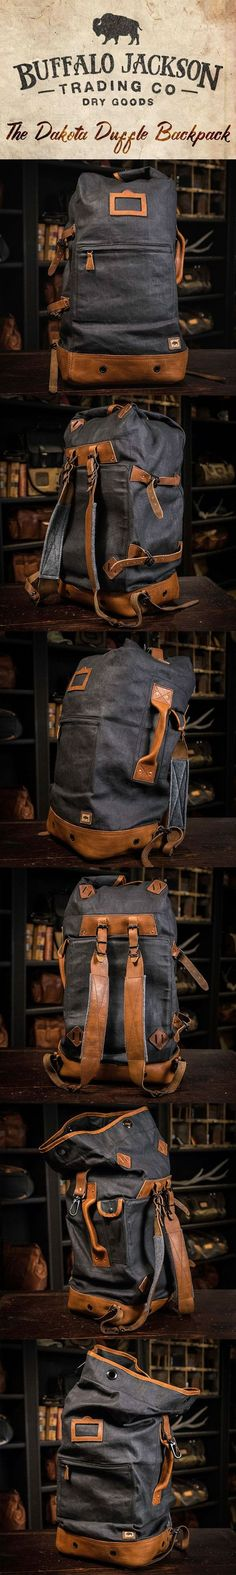 Crafted of waxed canvas and distressed full grain leather, this men's vintage military duffle backpack was built to honor the memory of good men and good days. Fill it with your sports gear or go hiking across Europe. This bag can handle it. padded leather shoulder straps | interior laptop sleeve | finest leathers and canvases